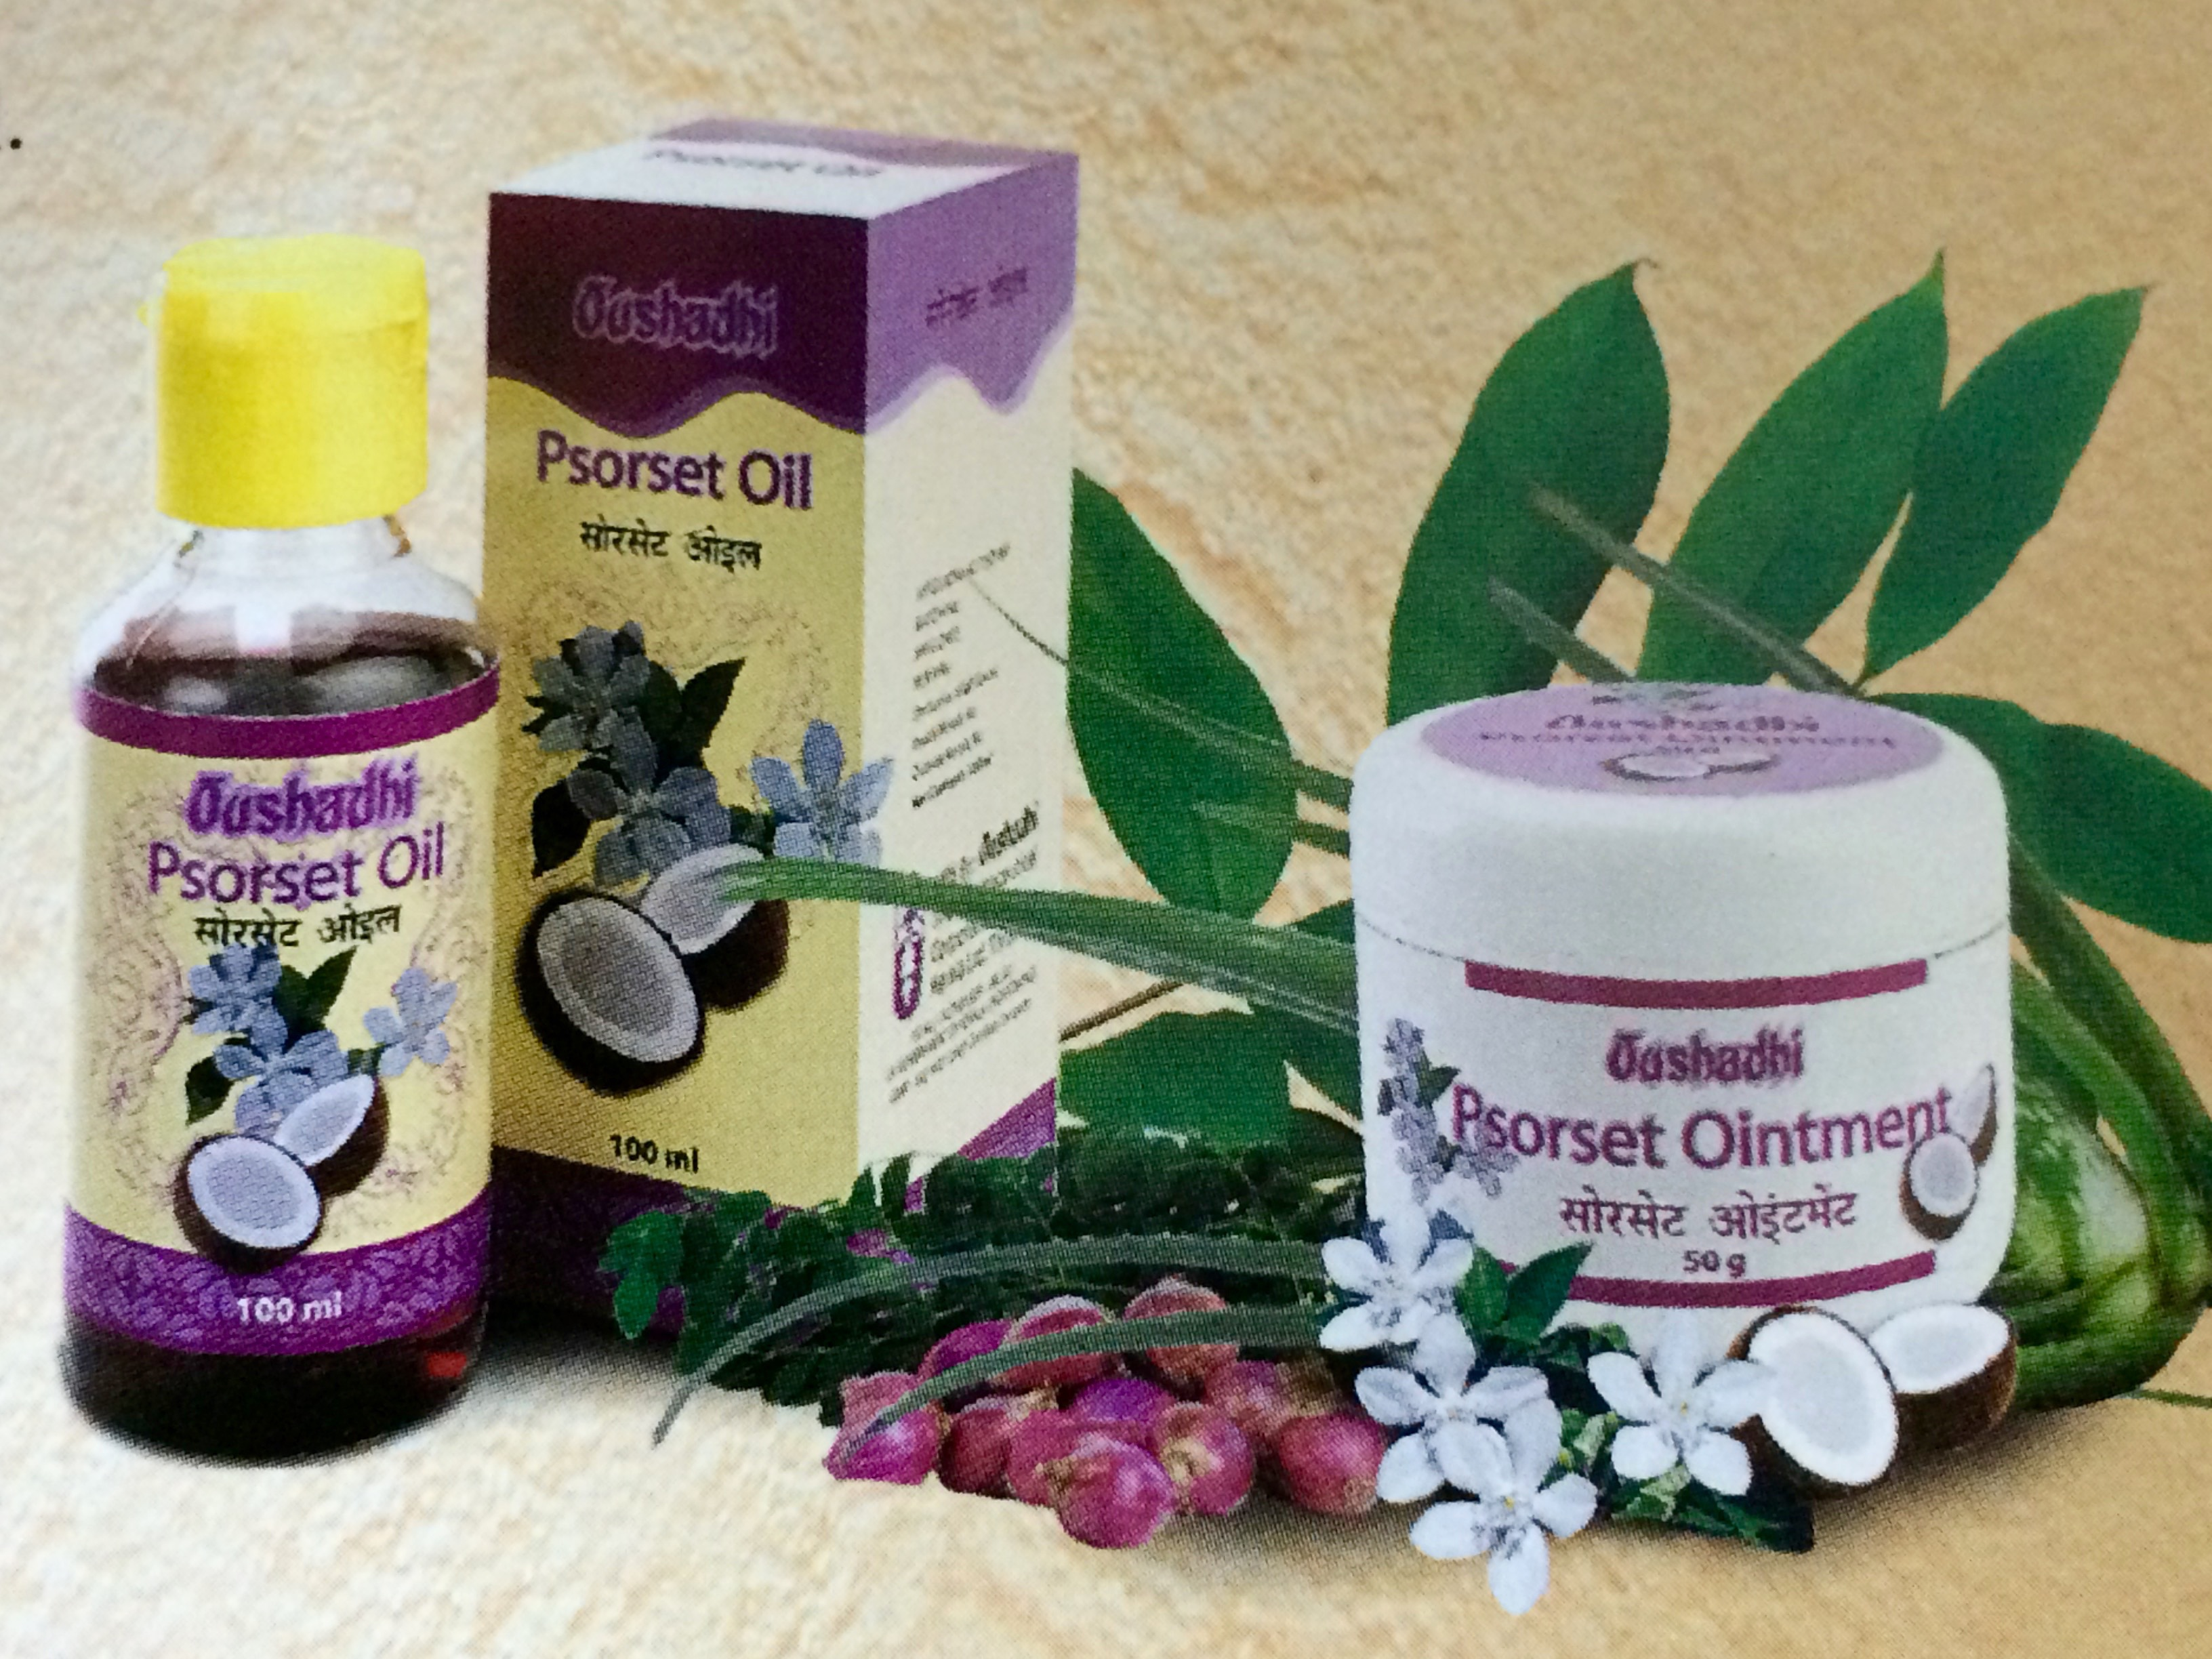 Psorset Ointment